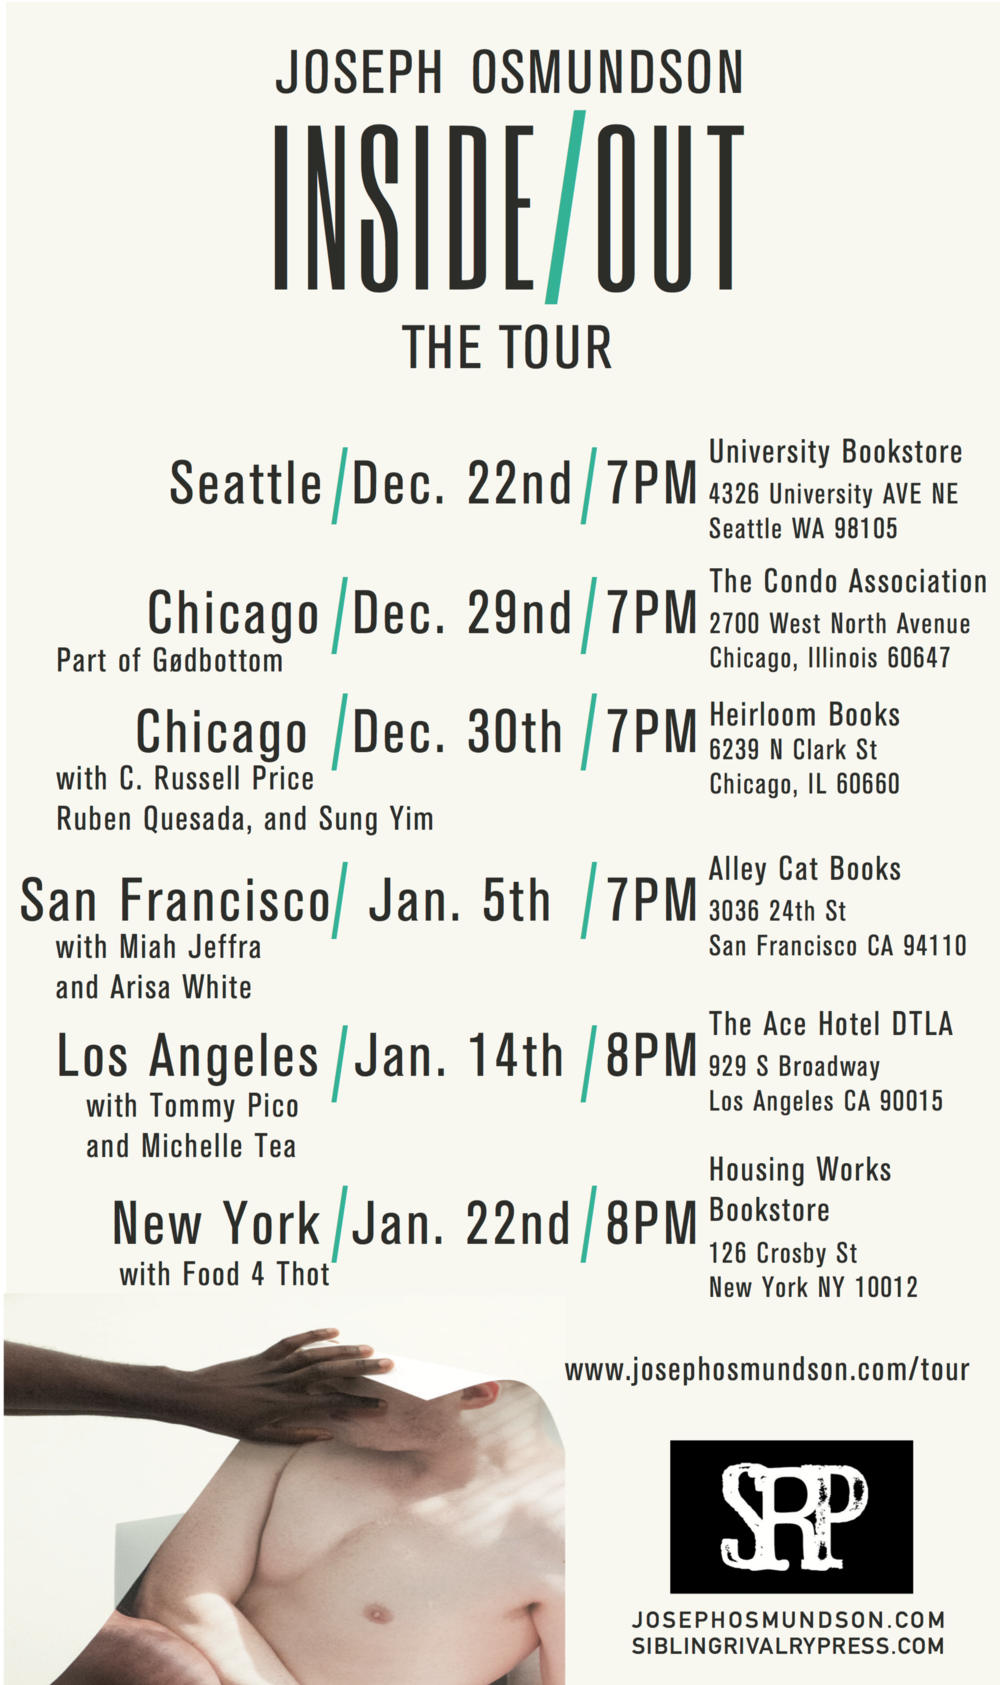 Tour information - SEATTLE, WA  /  December 22  / University Bookstore4326 University Ave NE, Seattle WA 98105CHICAGO, IL  /  December 29  / The Condo Association2700 West North Avenue Chicago, IL 60647CHICAGO, IL  /  December 30  / Heirloom Books6239 N Clark Street, Chicago IL 60660SAN FRANCISCO, CA  /  January 5  /  Alley Cat Books3036 24th Street San Francisco CA 94110 LOS ANGELES, CA  /  January 14  /  Ace Hotel DTLA929 S Broadway, Los Angeles CA 90015NEW YORK, NY  /  January 22nd  /  Housing Works Bookstore126 Crosby Street New York NY 10012